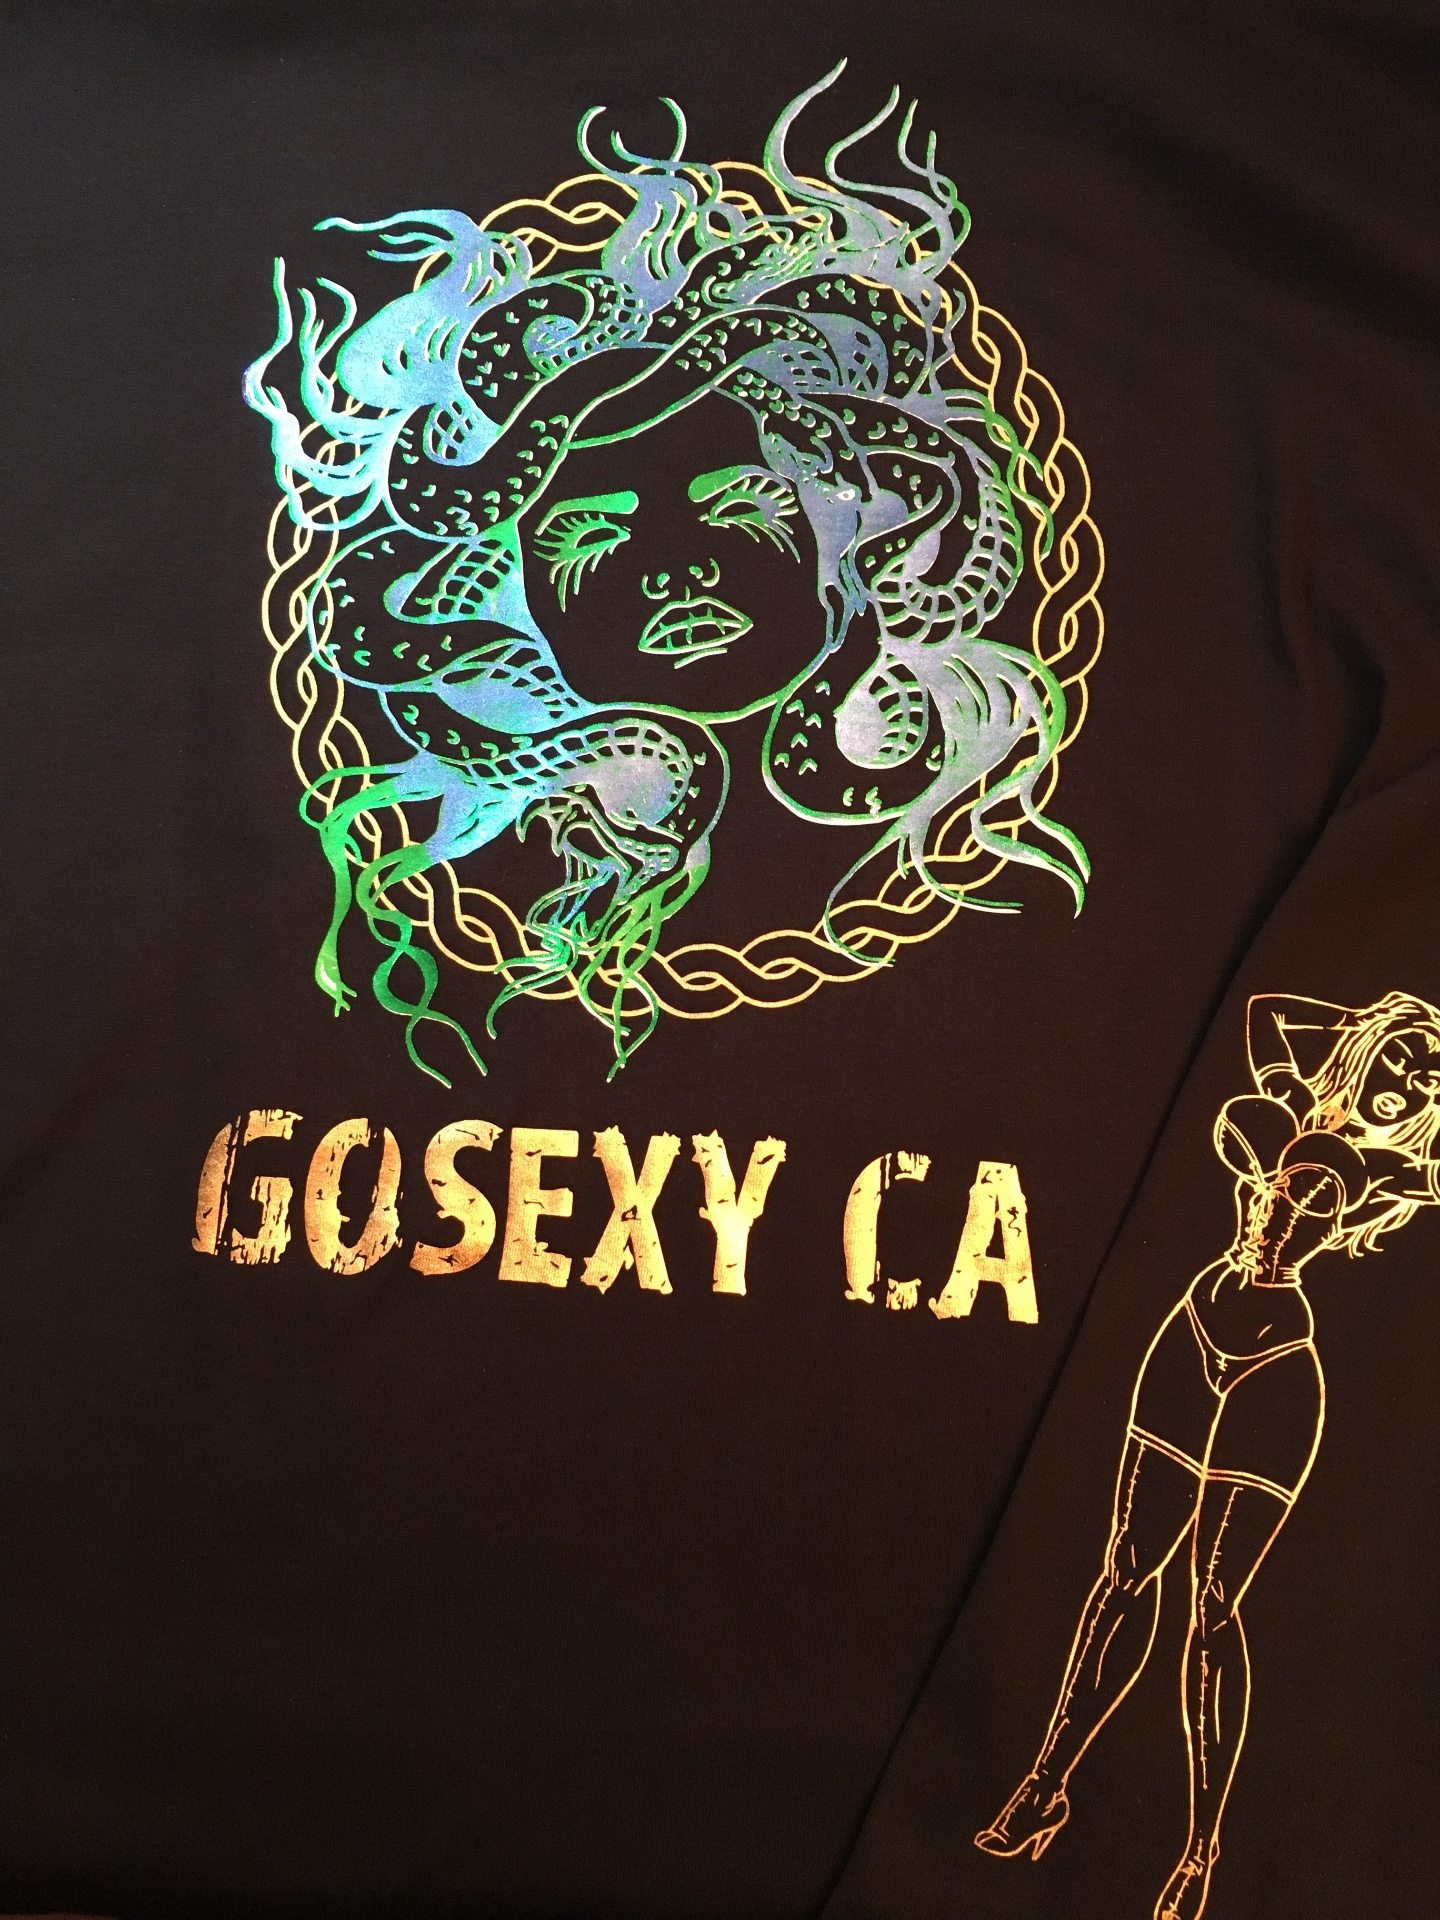 Hat & Apparel Printing, Contour Media Graphics and Custom Vectored illustration GoSexyCA